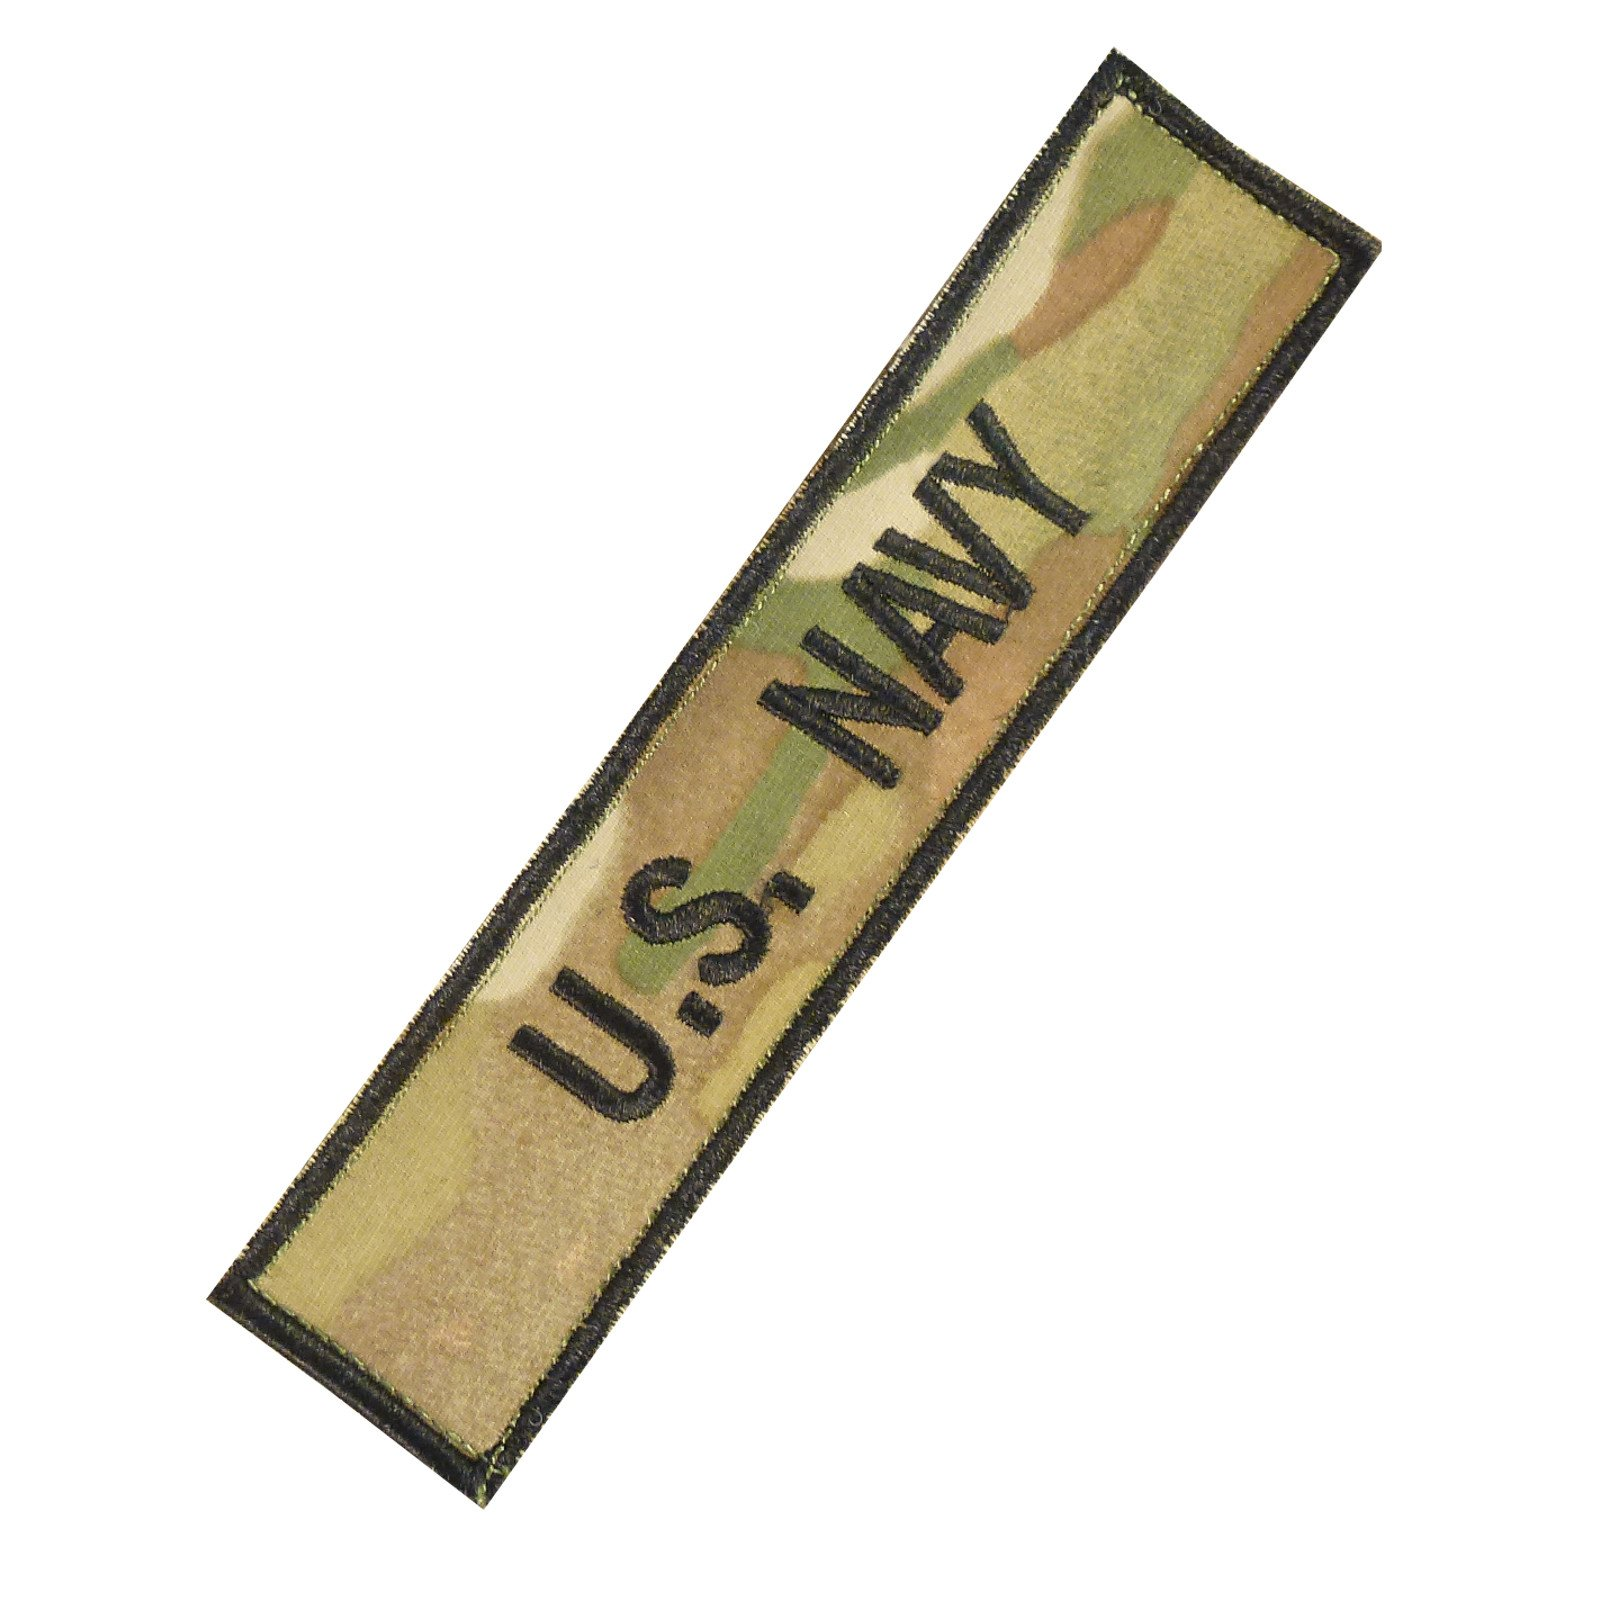 US Marina Navy USN Name Tape Multicam Ricamata Ricamo Militare Hook-and-Loop Toppa Patch